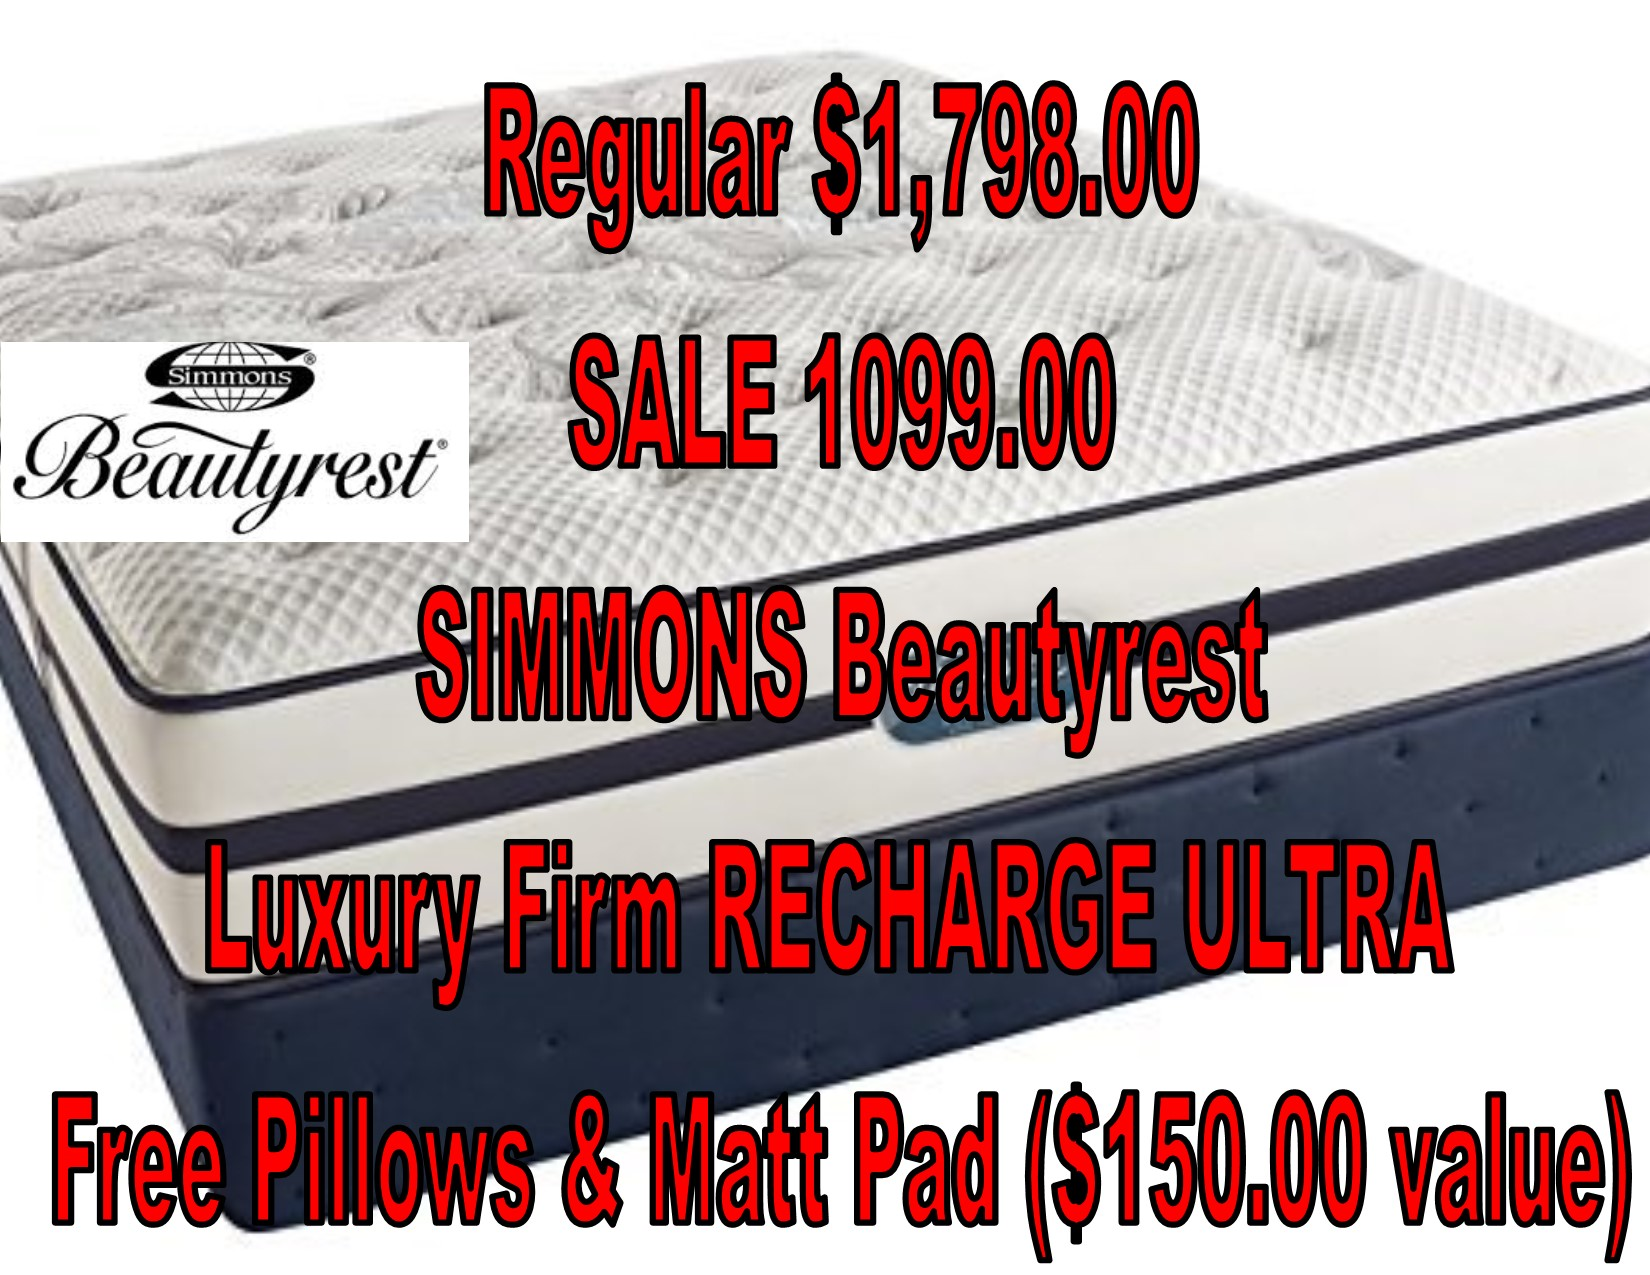 Mattress Deals image 62